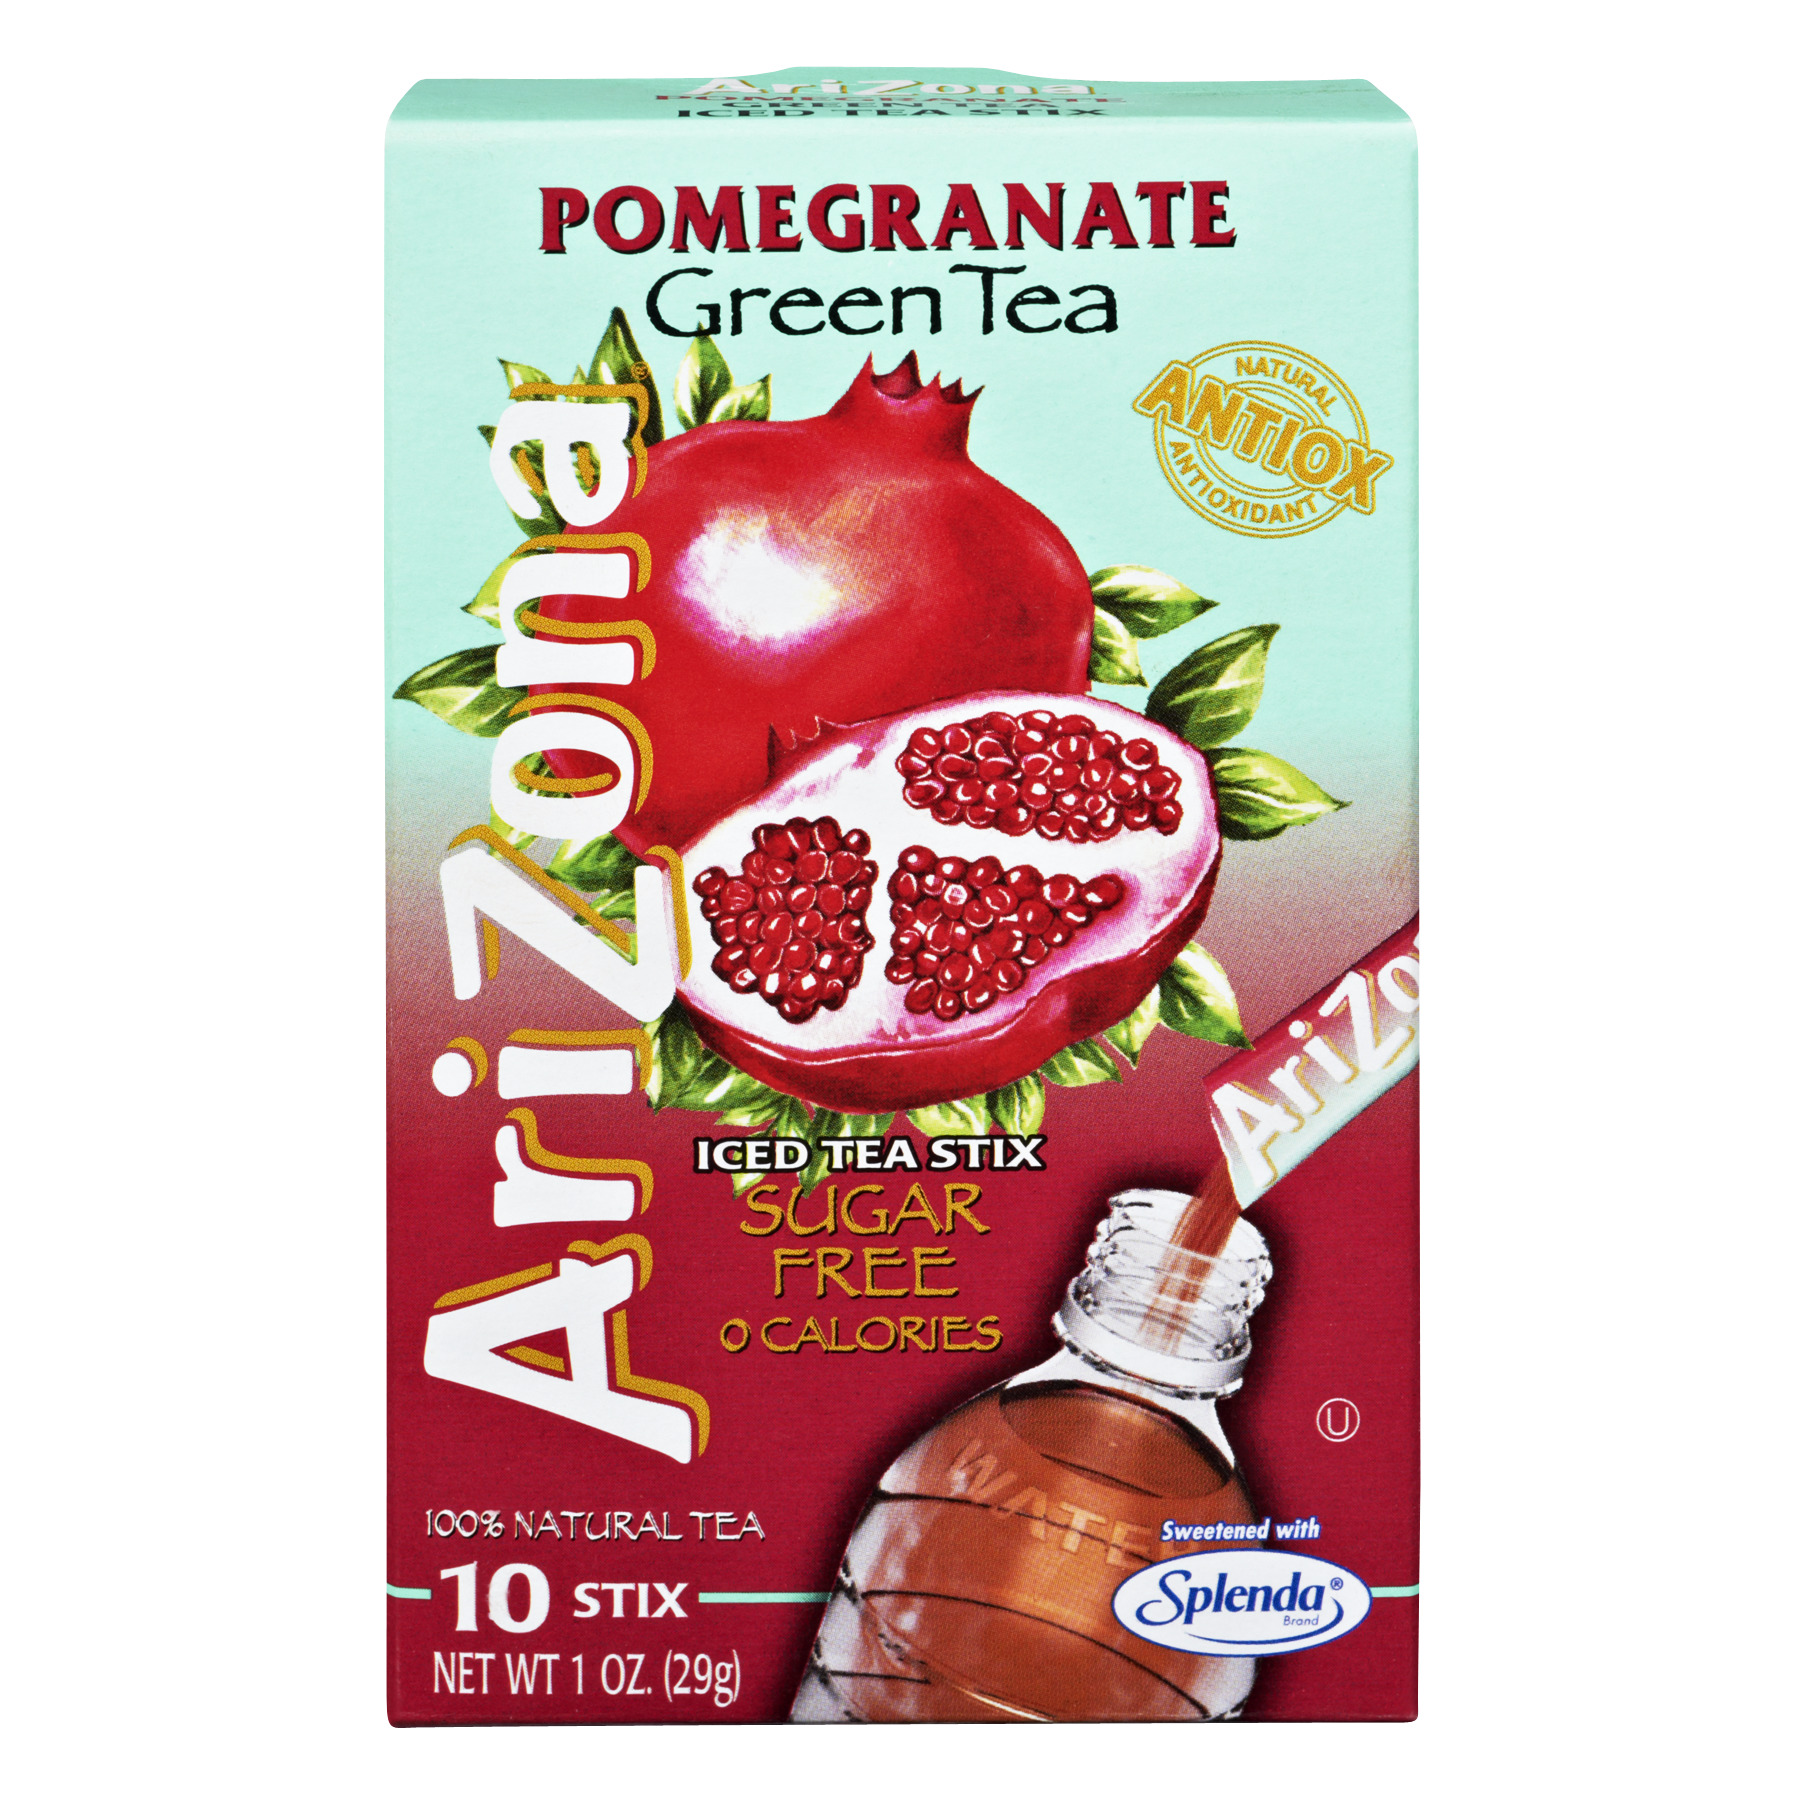 Arizona Pomegranate Green Tea Sugar Free 0 Calories Iced Tea Stix- 10 CT1.0 OZ